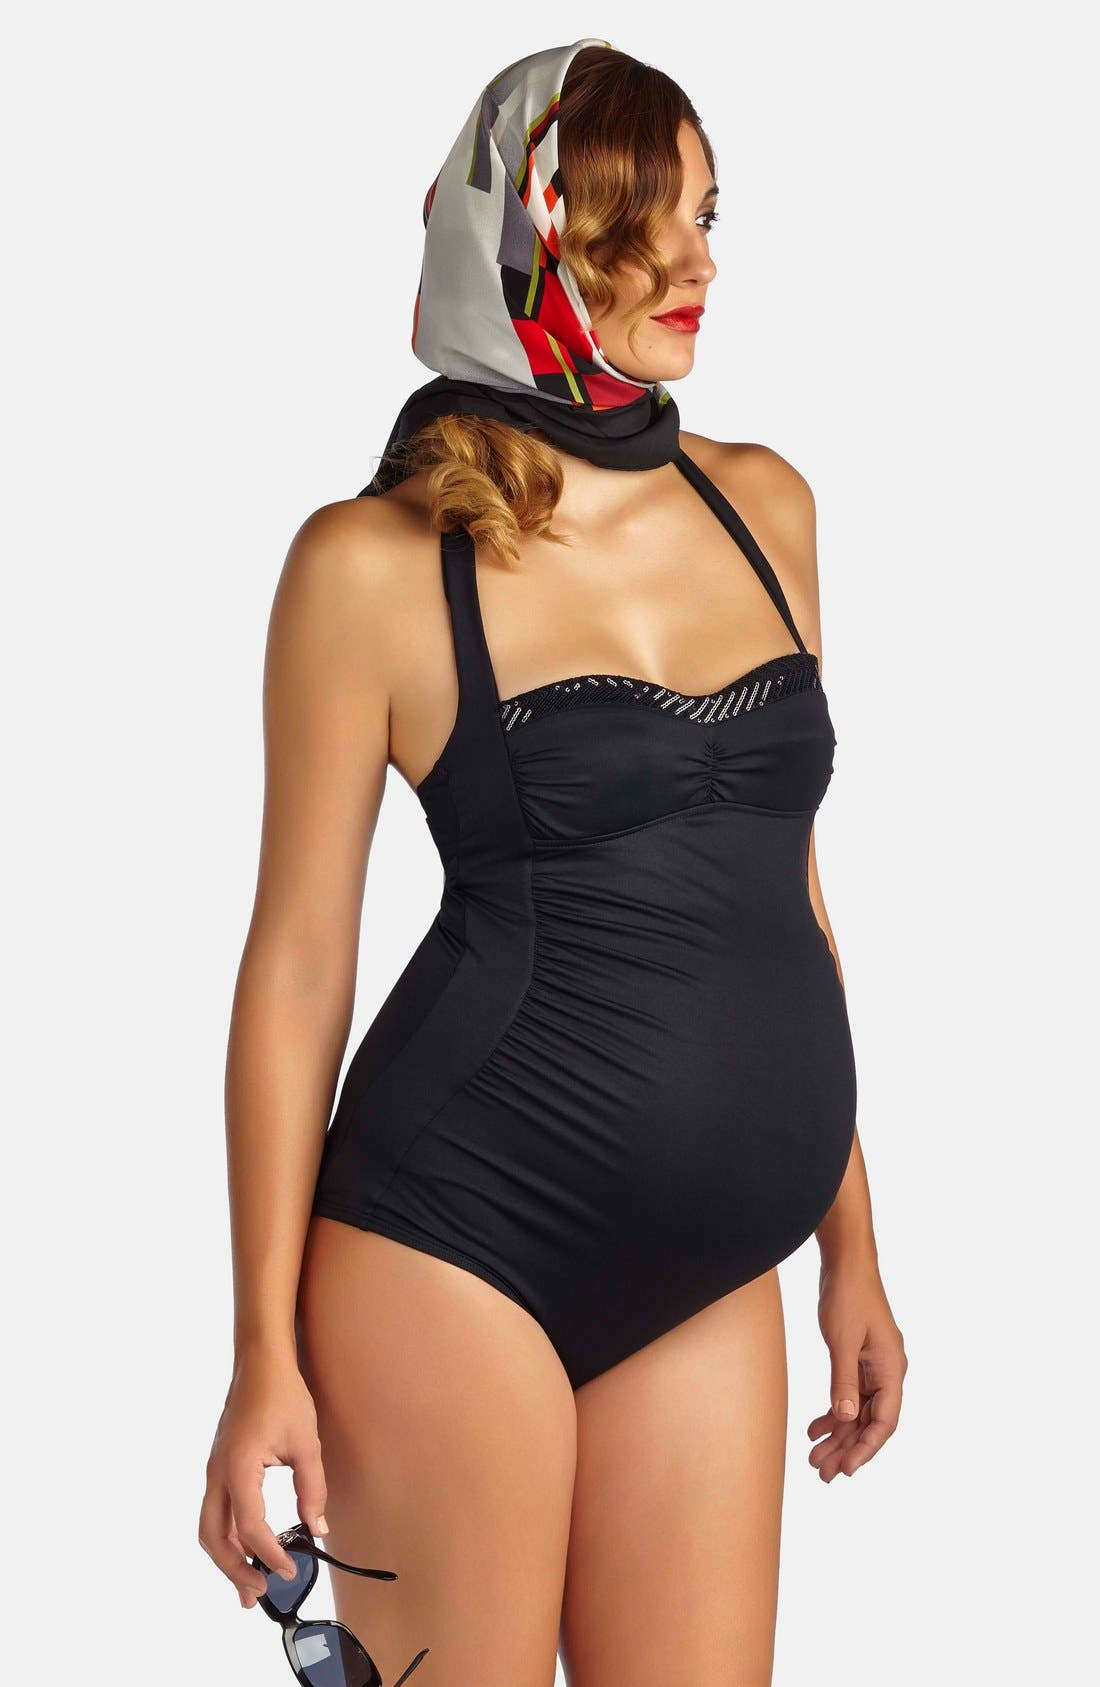 Alternate Image 1 Selected - Pez D'Or 'Retro' Ruched One-Piece Maternity Swimsuit